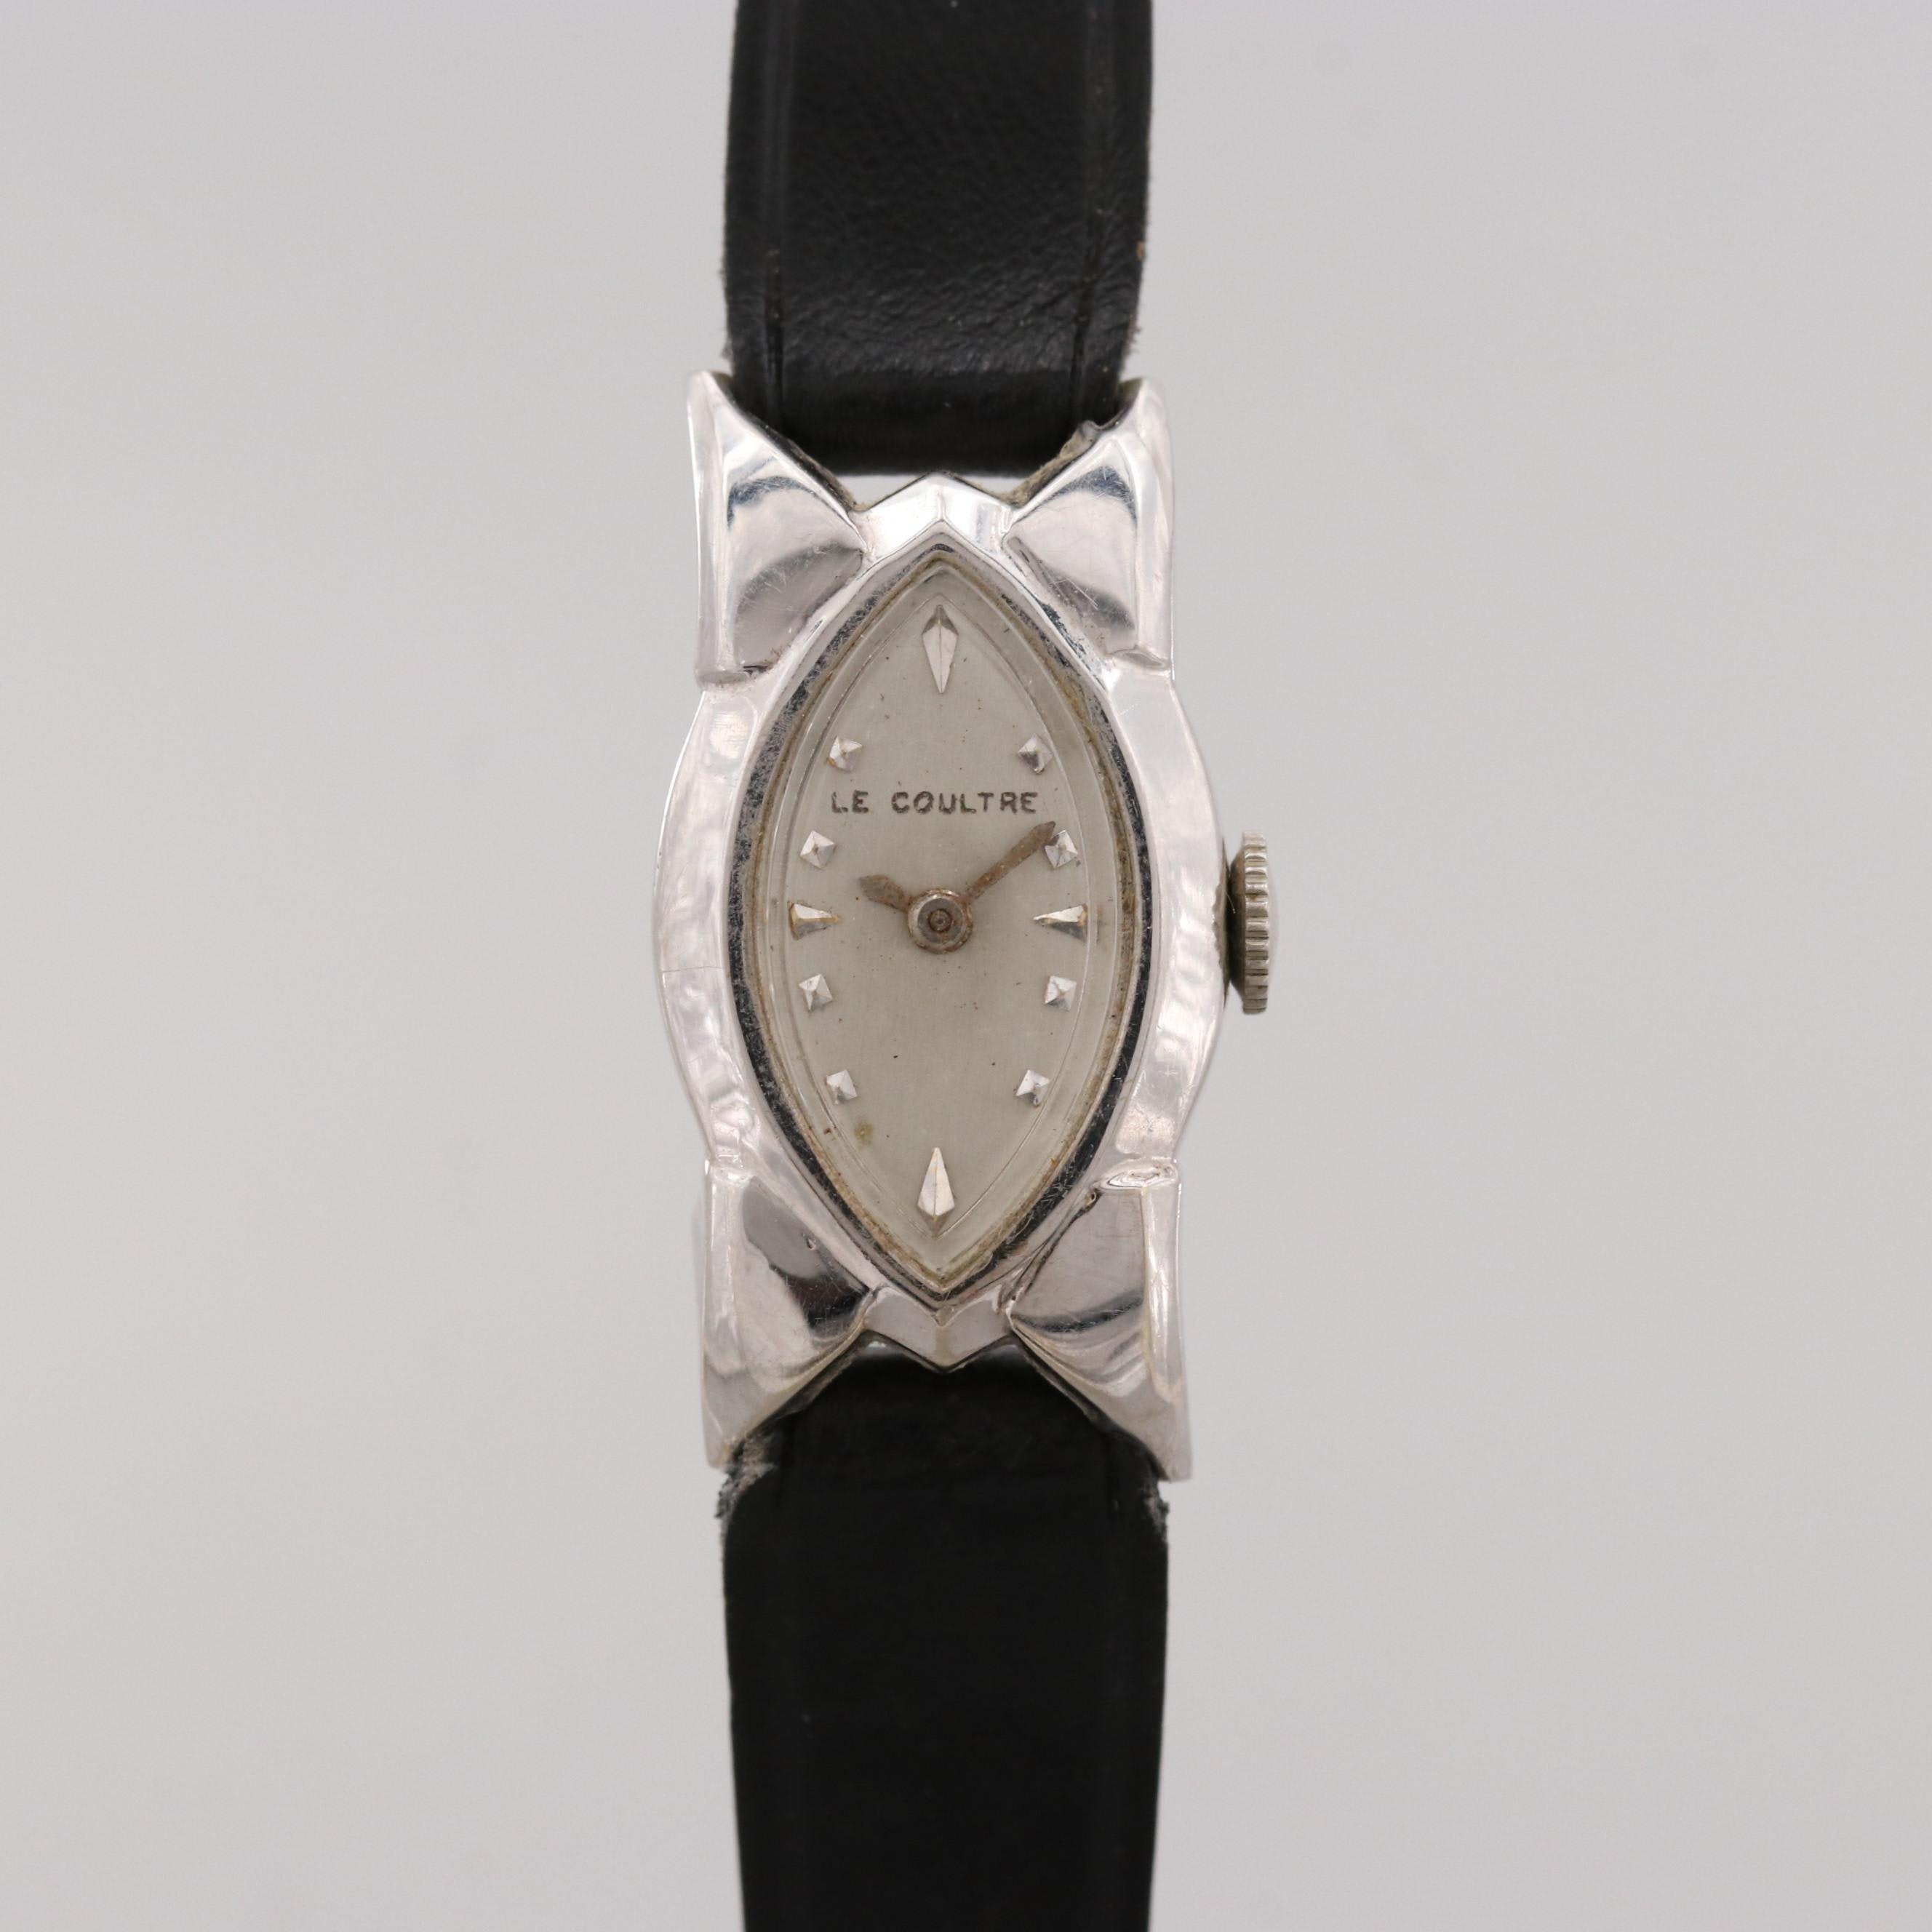 Vintage LeCoultre 14K White Gold Stem Wind Wristwatch